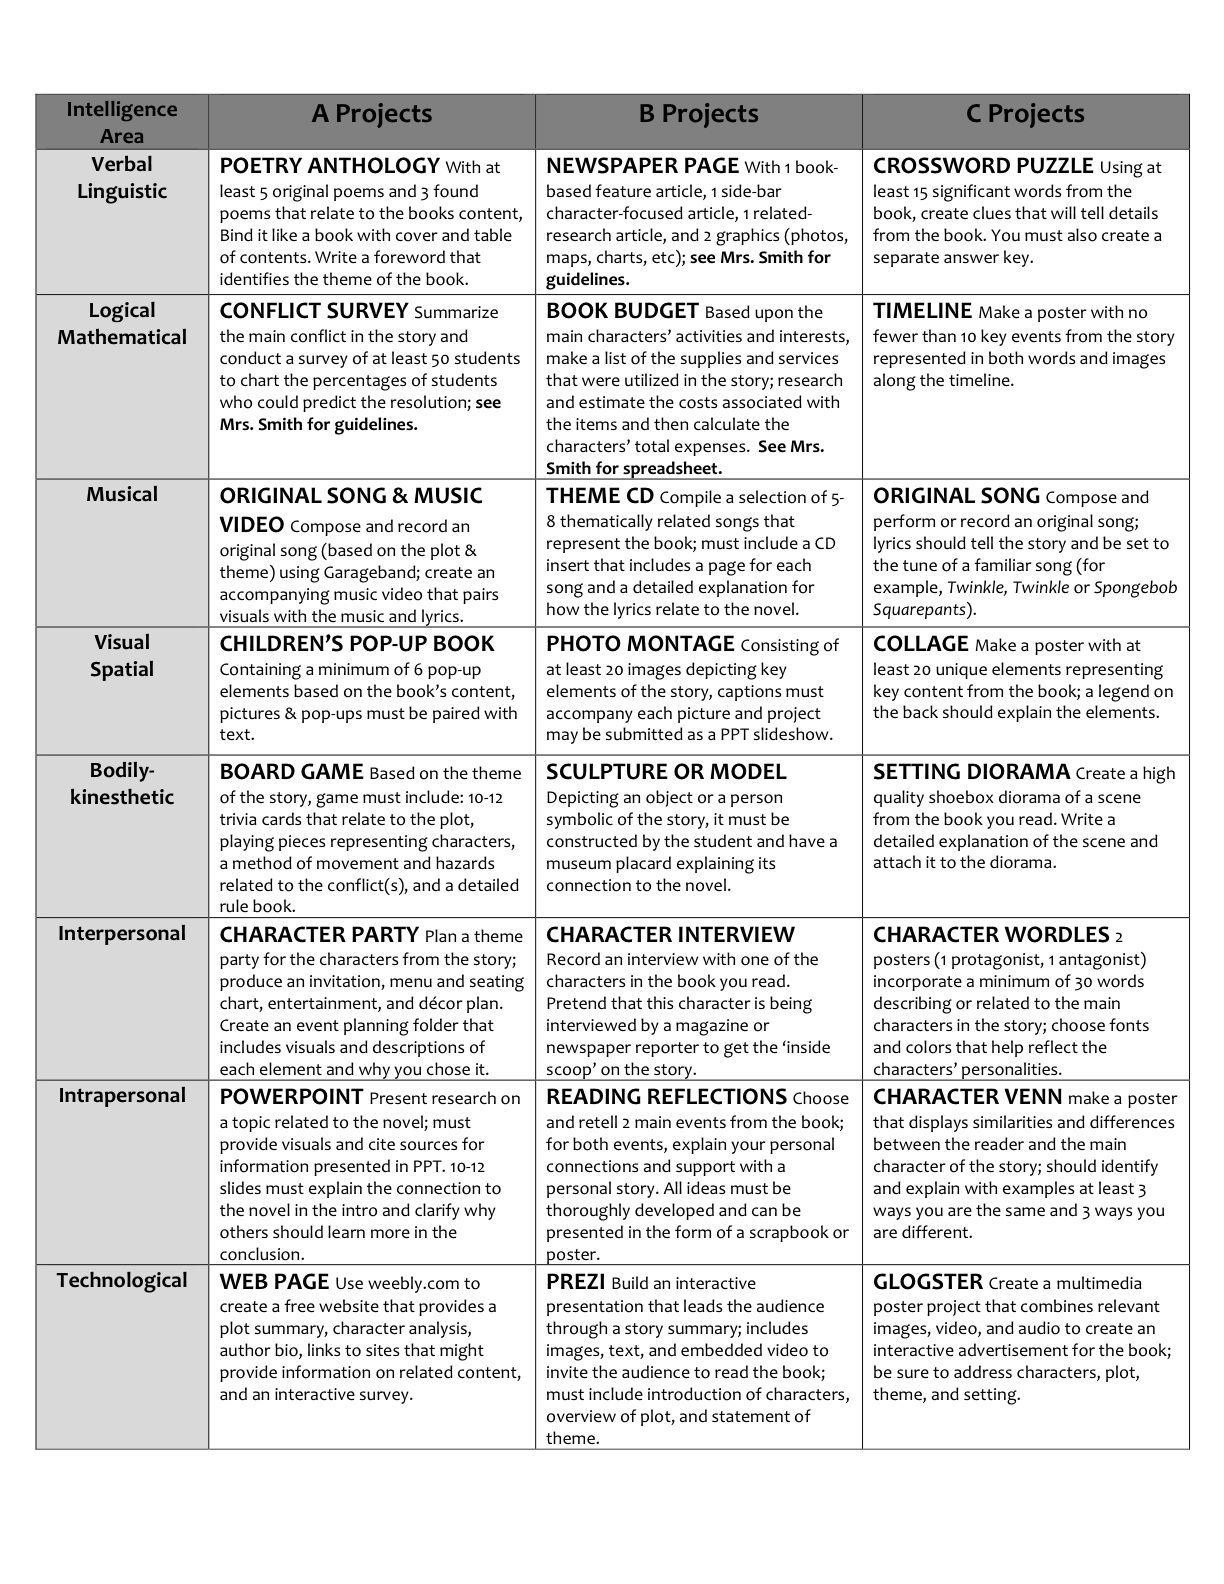 book project options for multiple intelligences in middle school book project options for multiple intelligences in middle school